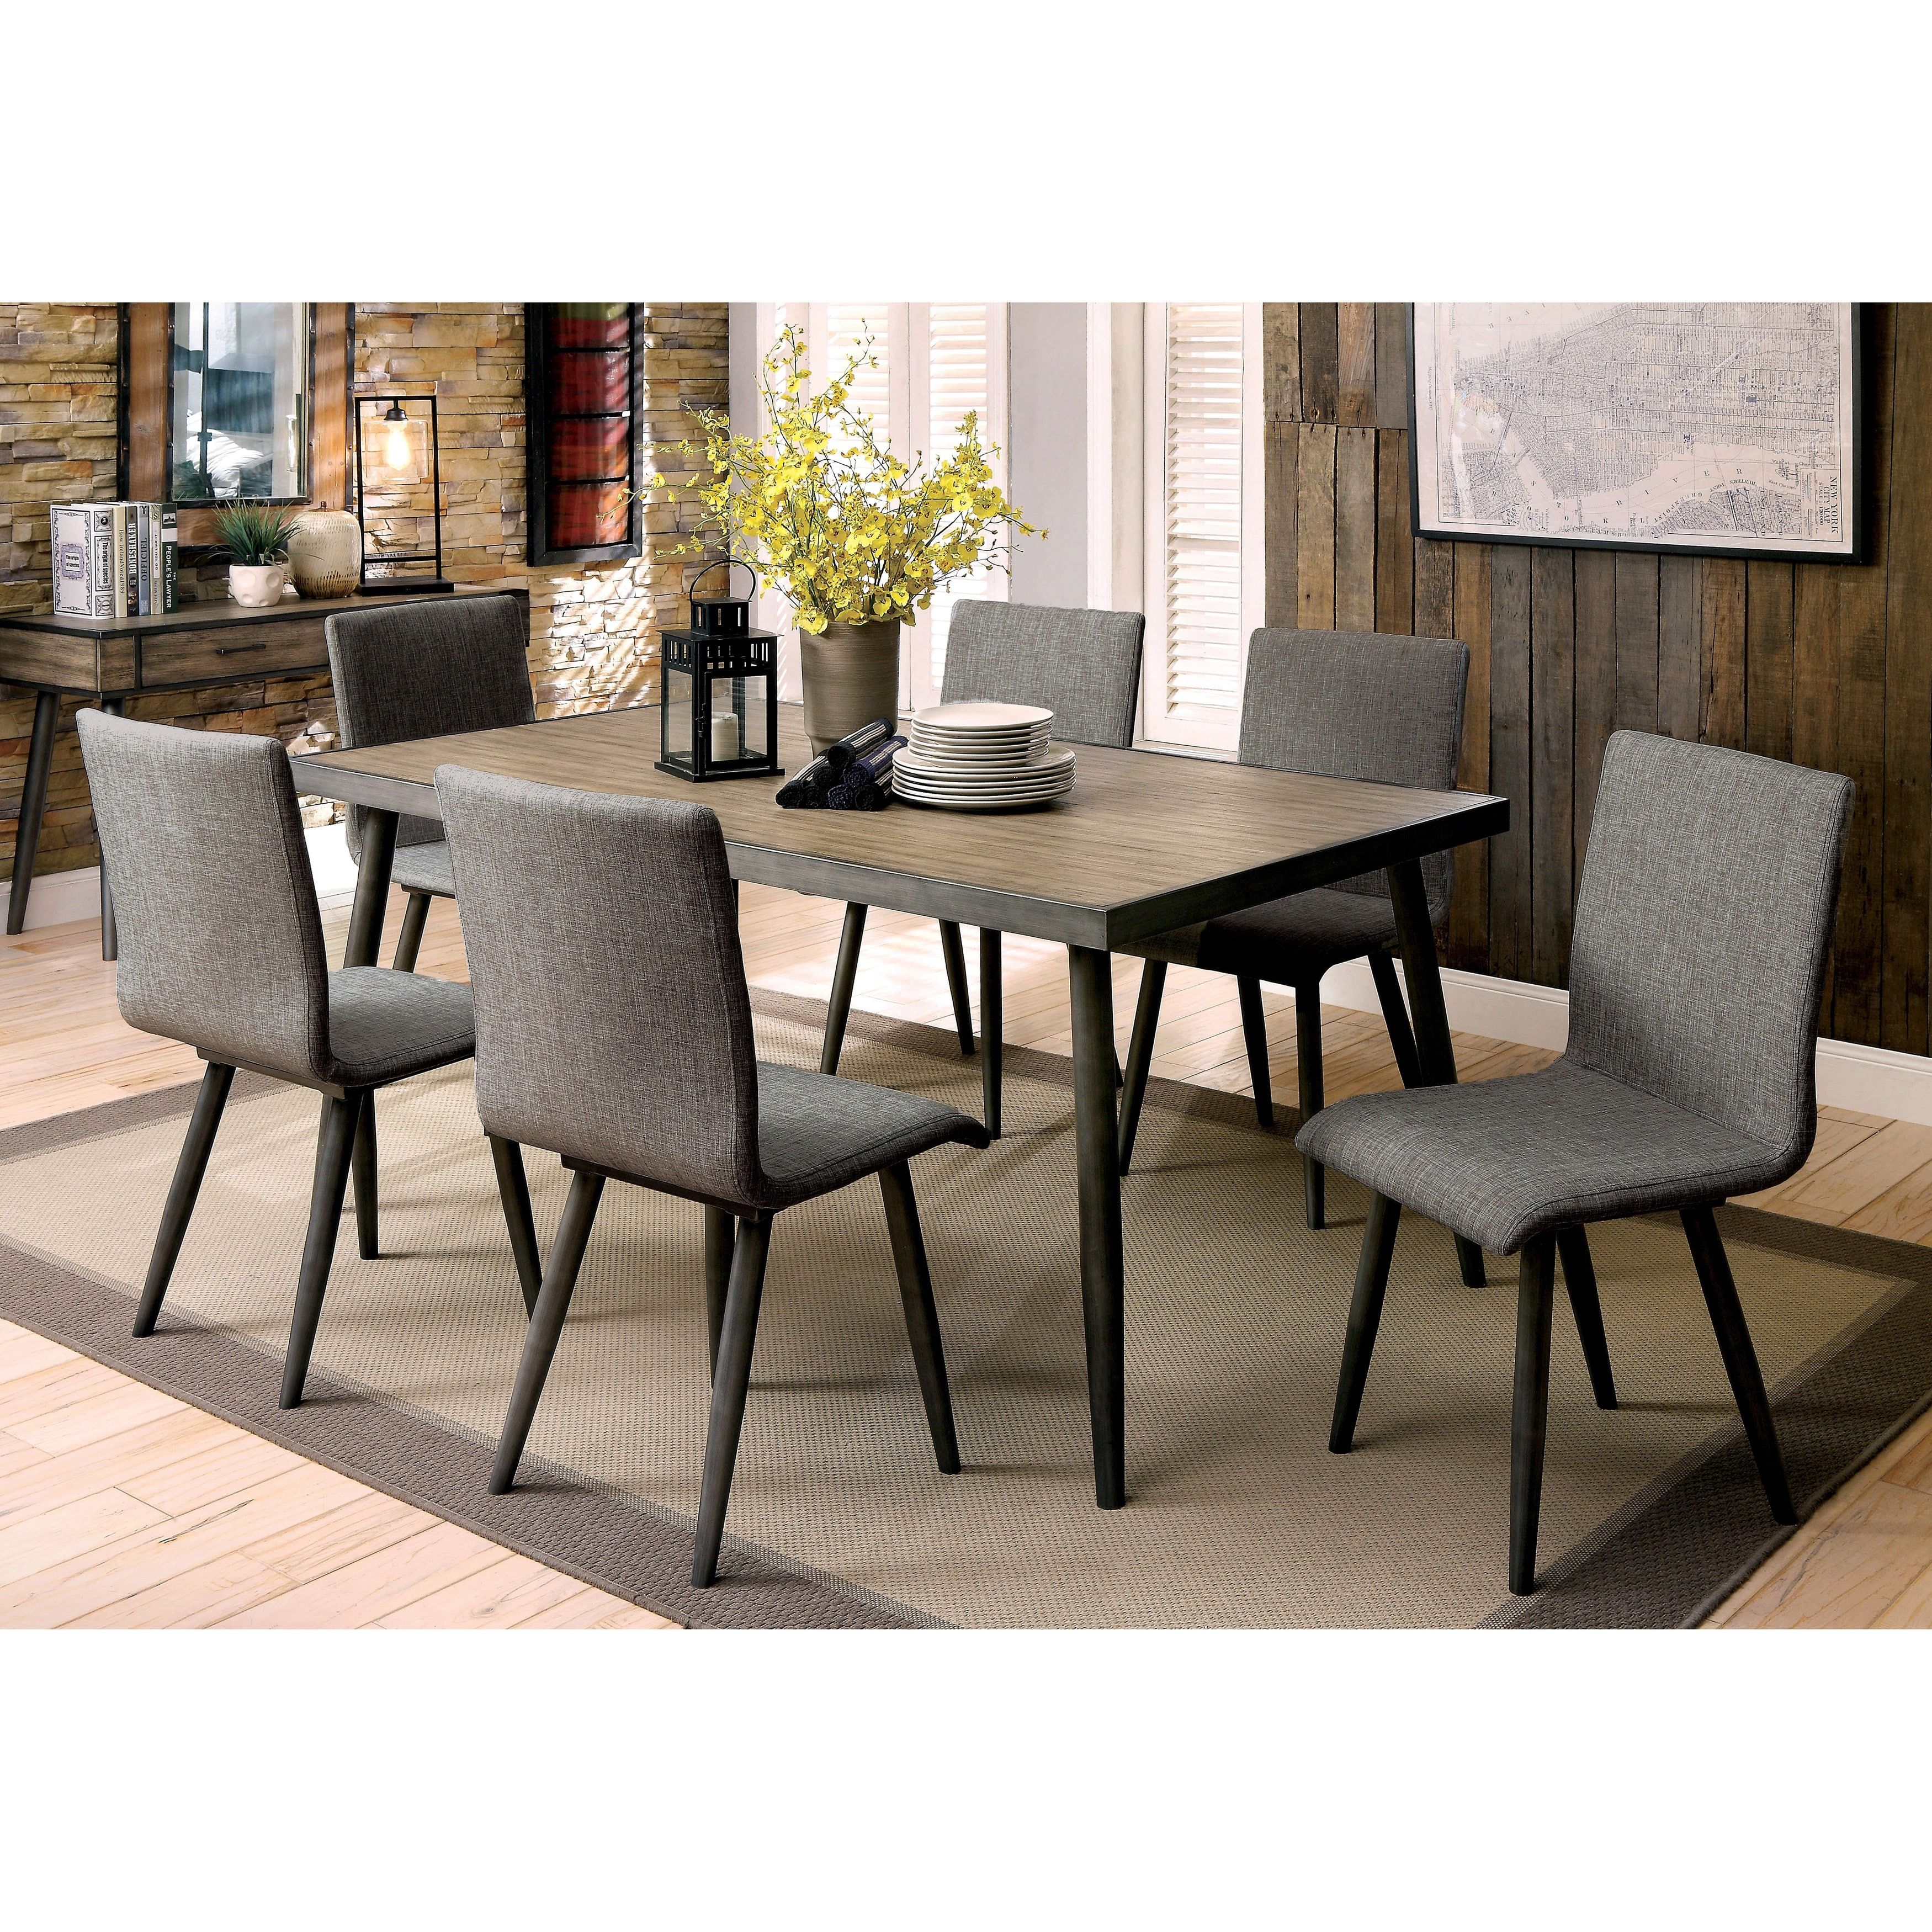 Creative Picture Of Industrial Kitchen Table And Chairs Meja